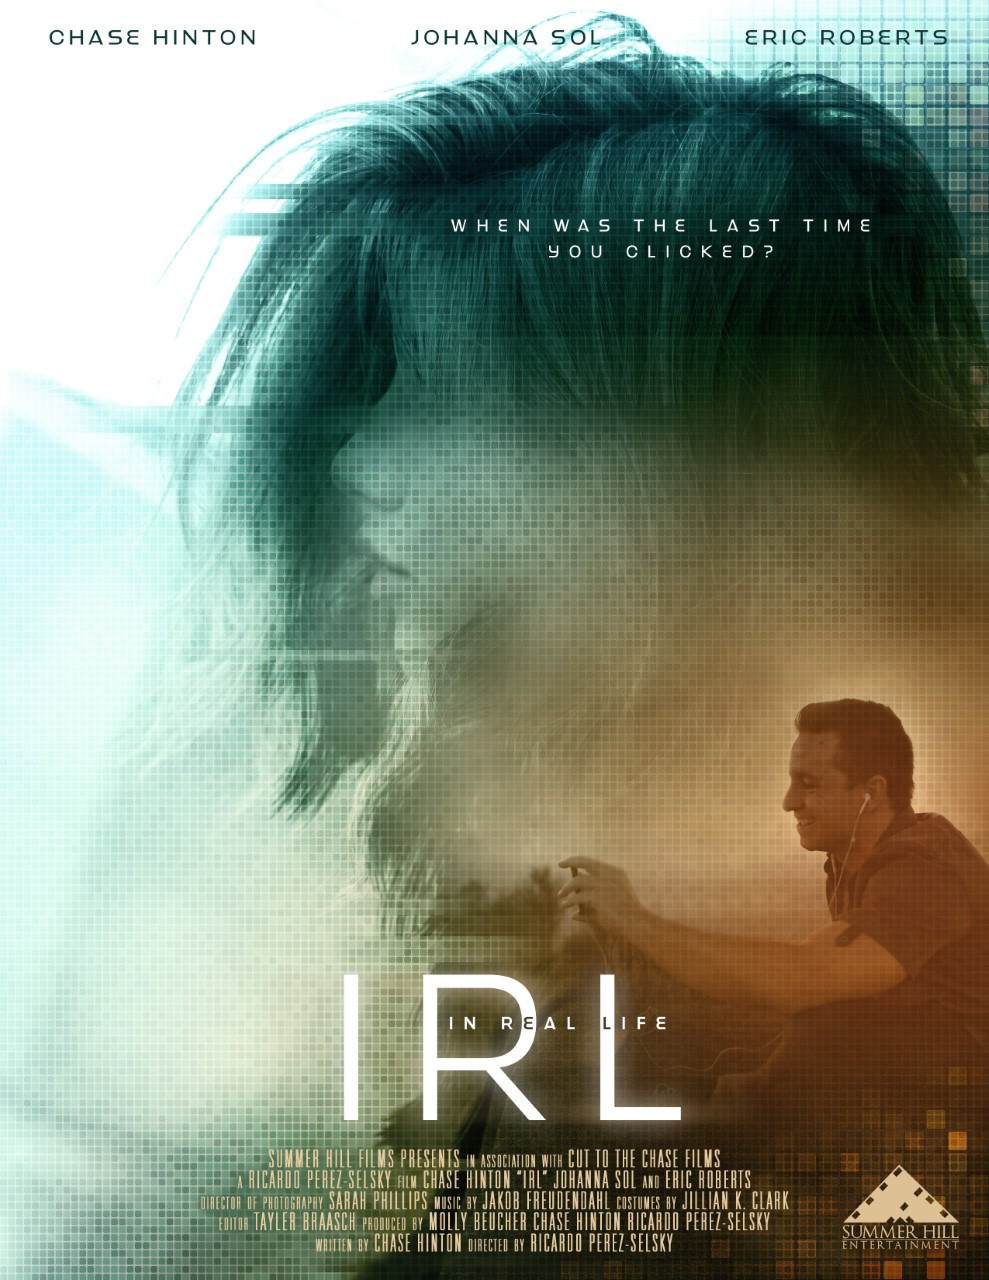 Film Poster for IRL showing protagonists Chase Hinton and Johanna Sol.